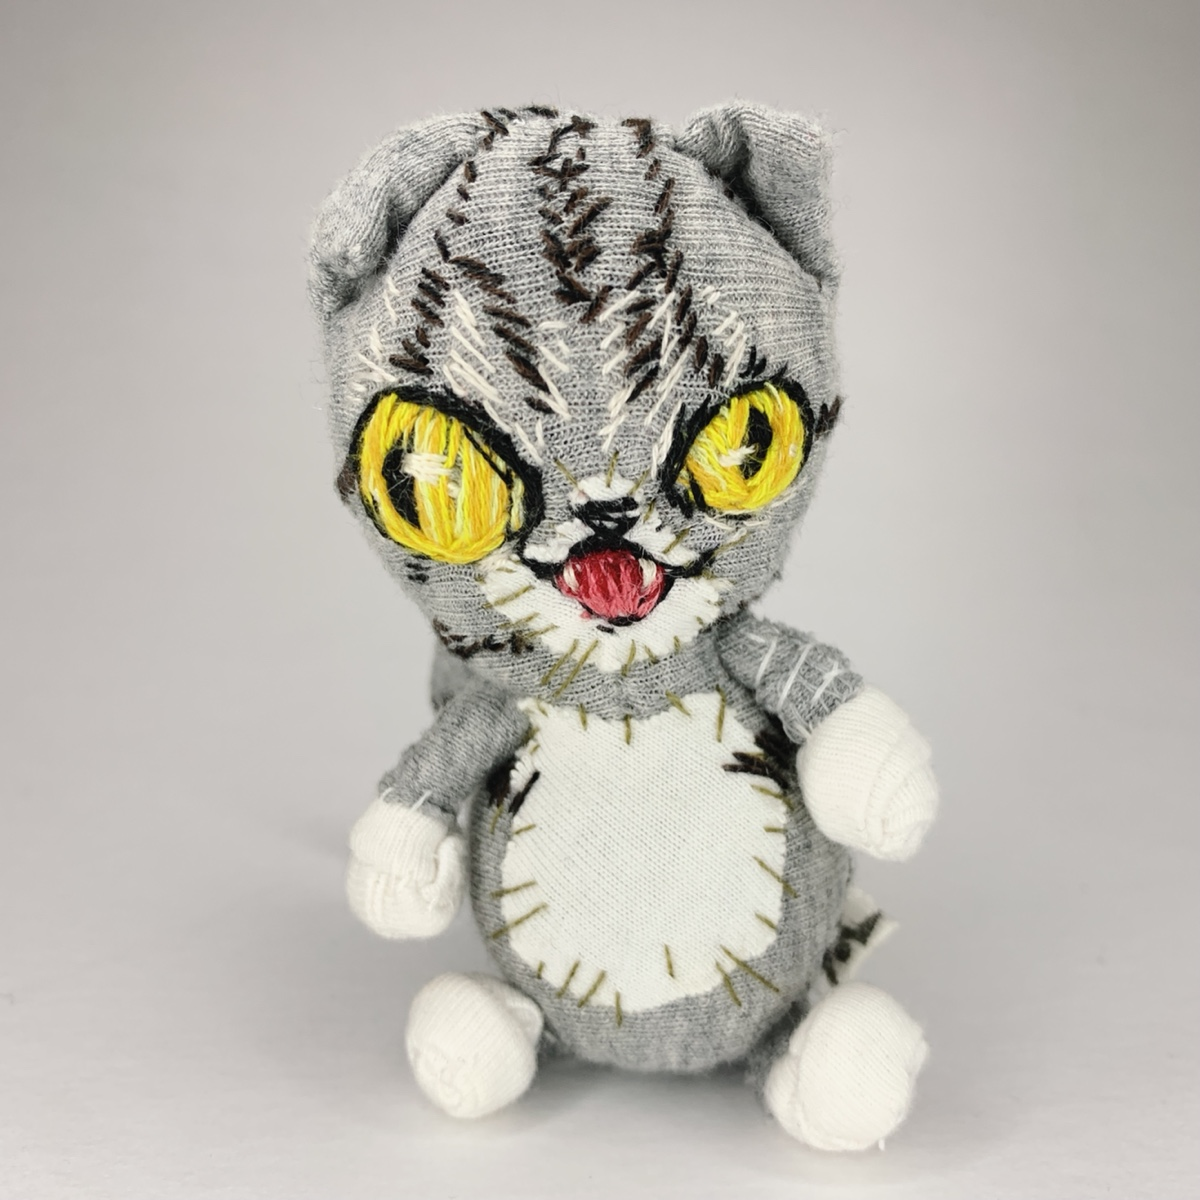 a grey tabby cat soft sculpture hand stitched from recycled materials